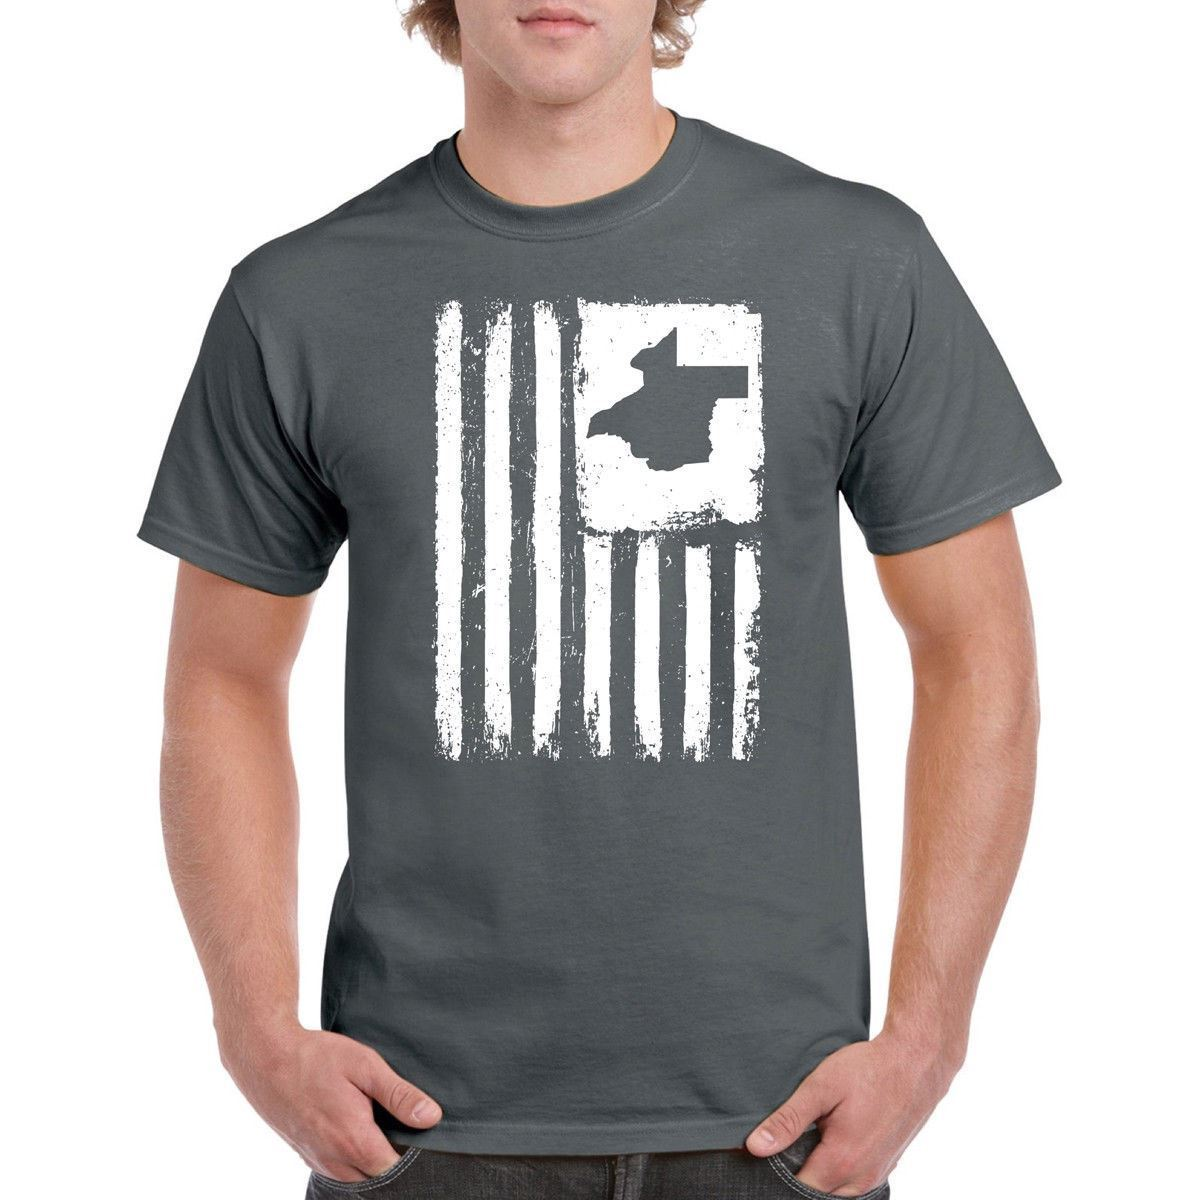 Texas-Flag-T-Shirt-Patriotic-Political-2nd-Amendment-Rights-Tee-S-3XL.jpg